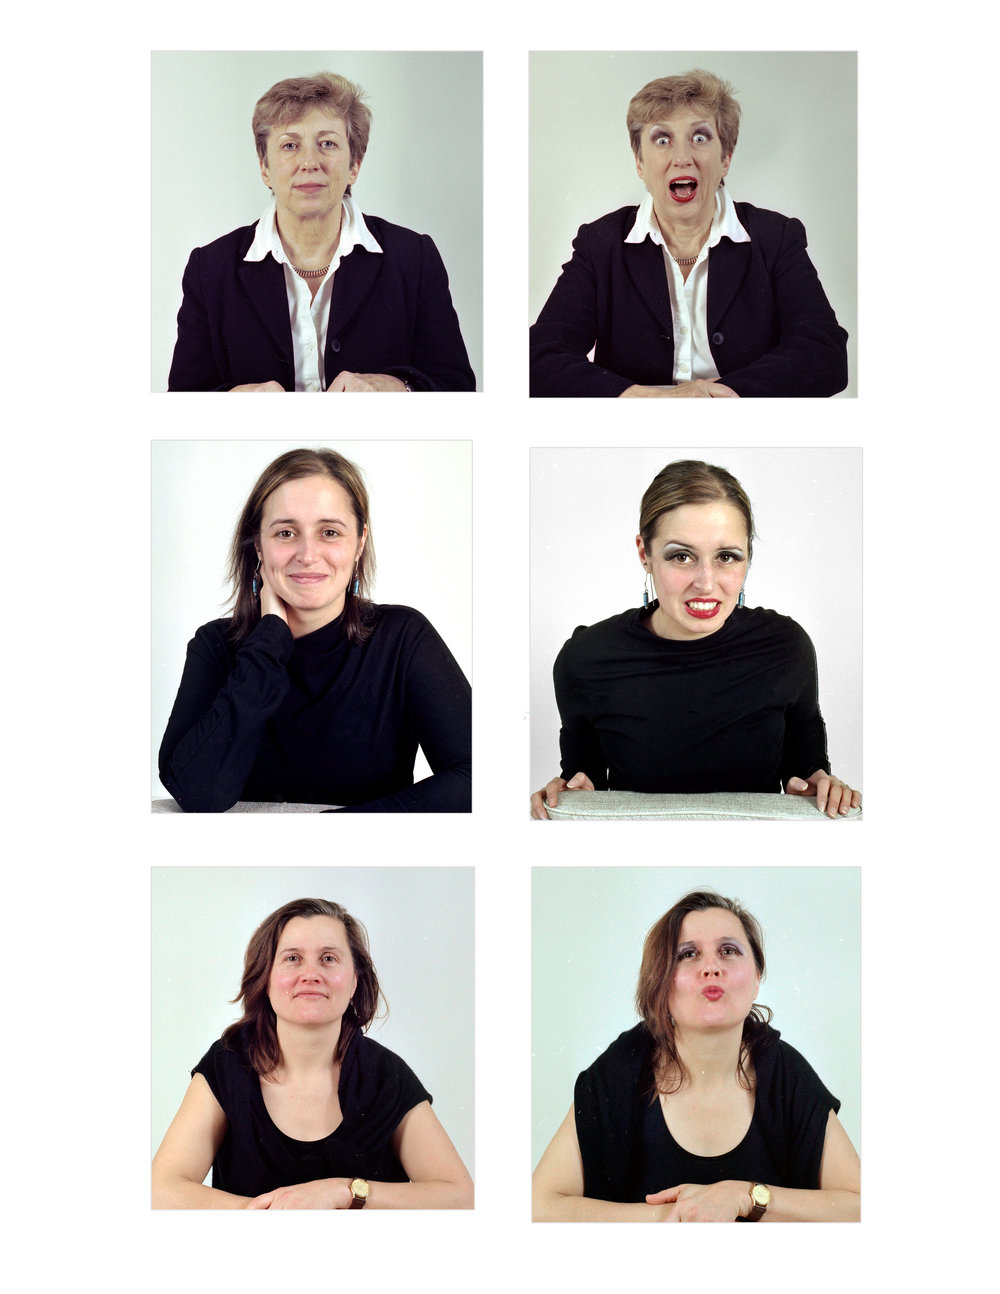 With and Without Makeup Series 1. Chromogenic Colour prints. 2008.